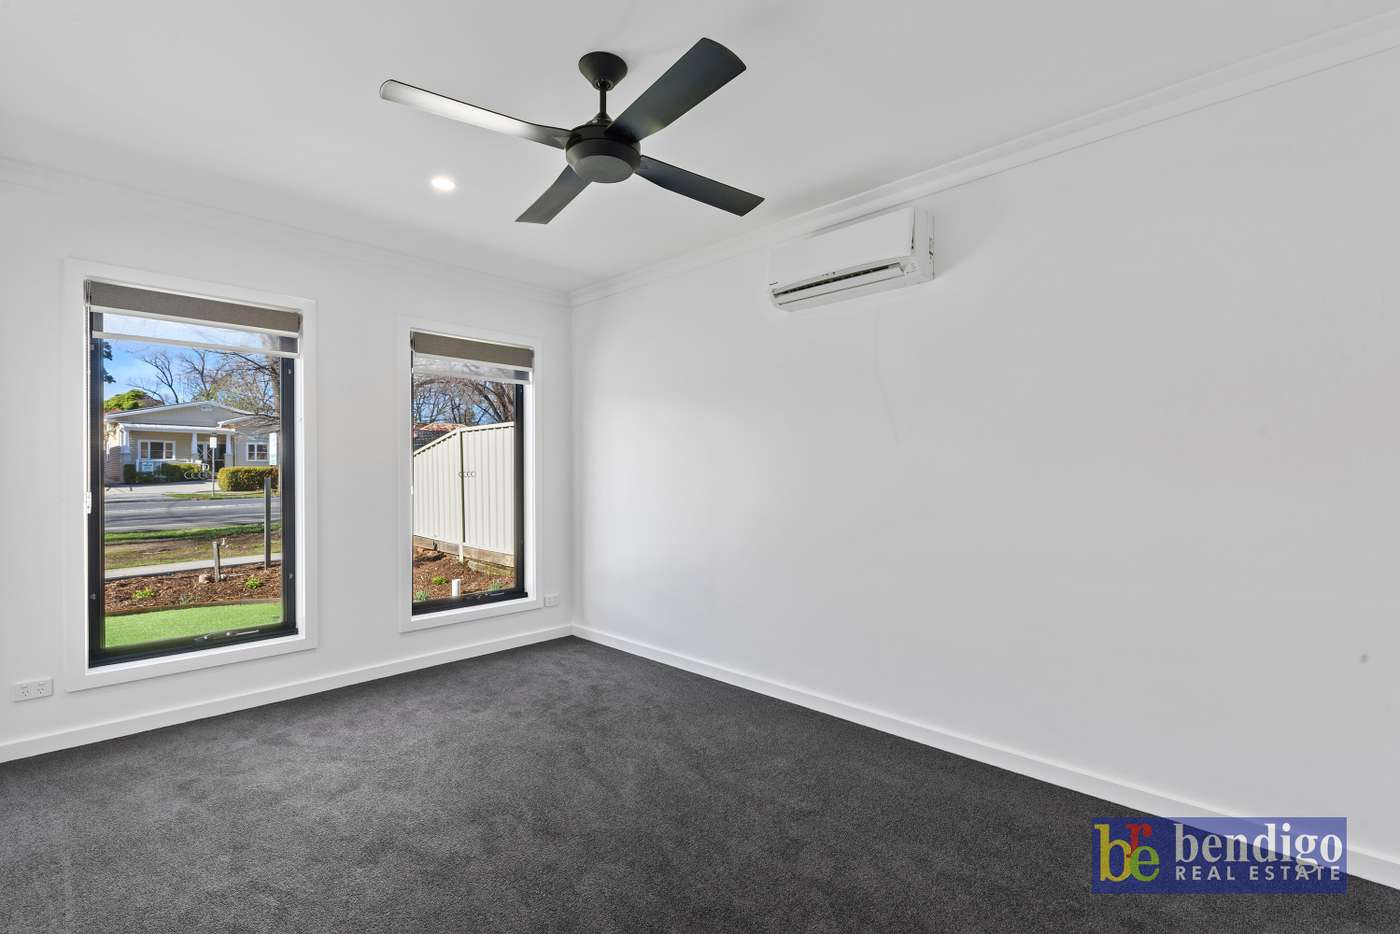 Fifth view of Homely house listing, 1/488 Hargreaves Street, Bendigo VIC 3550